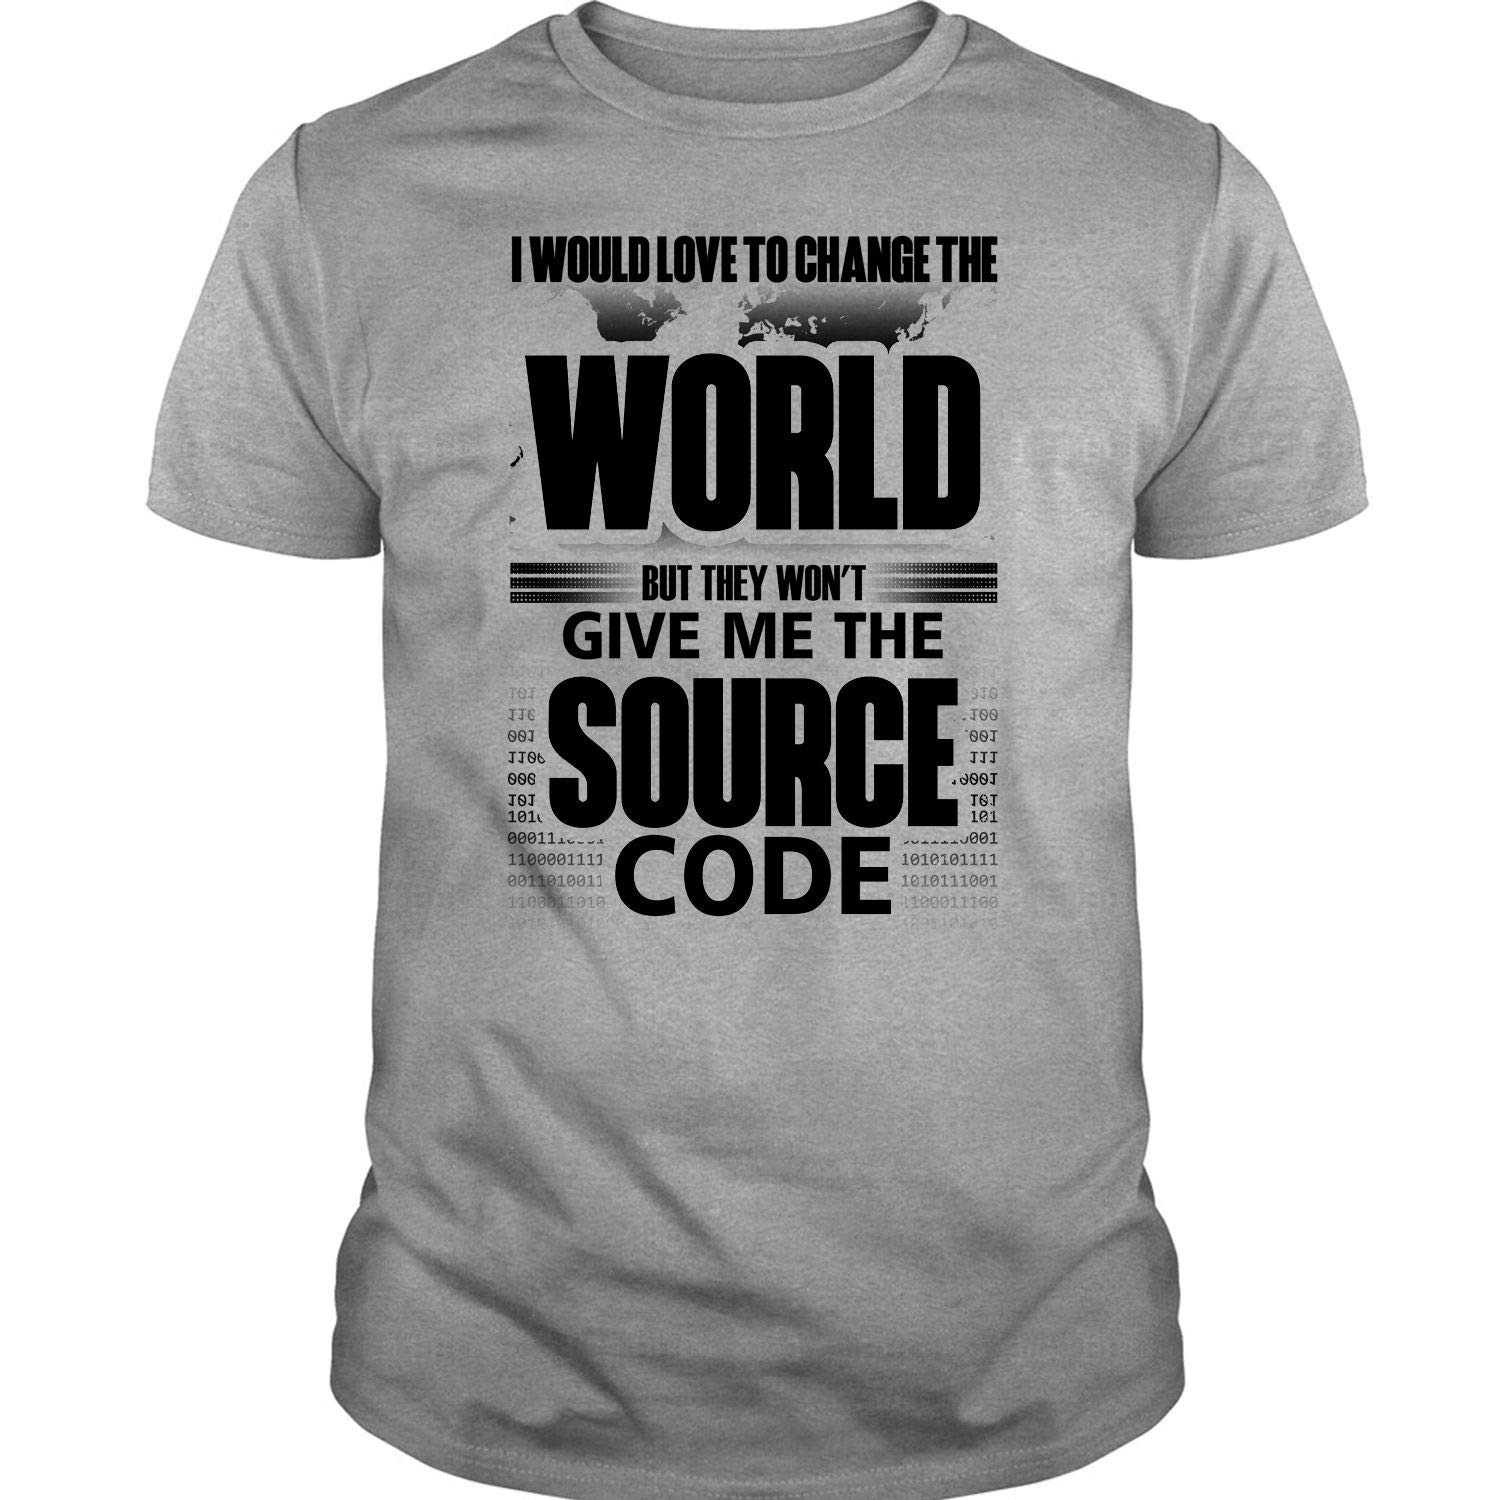 Source Code T Shirt I D Love To Change The World T Shirt